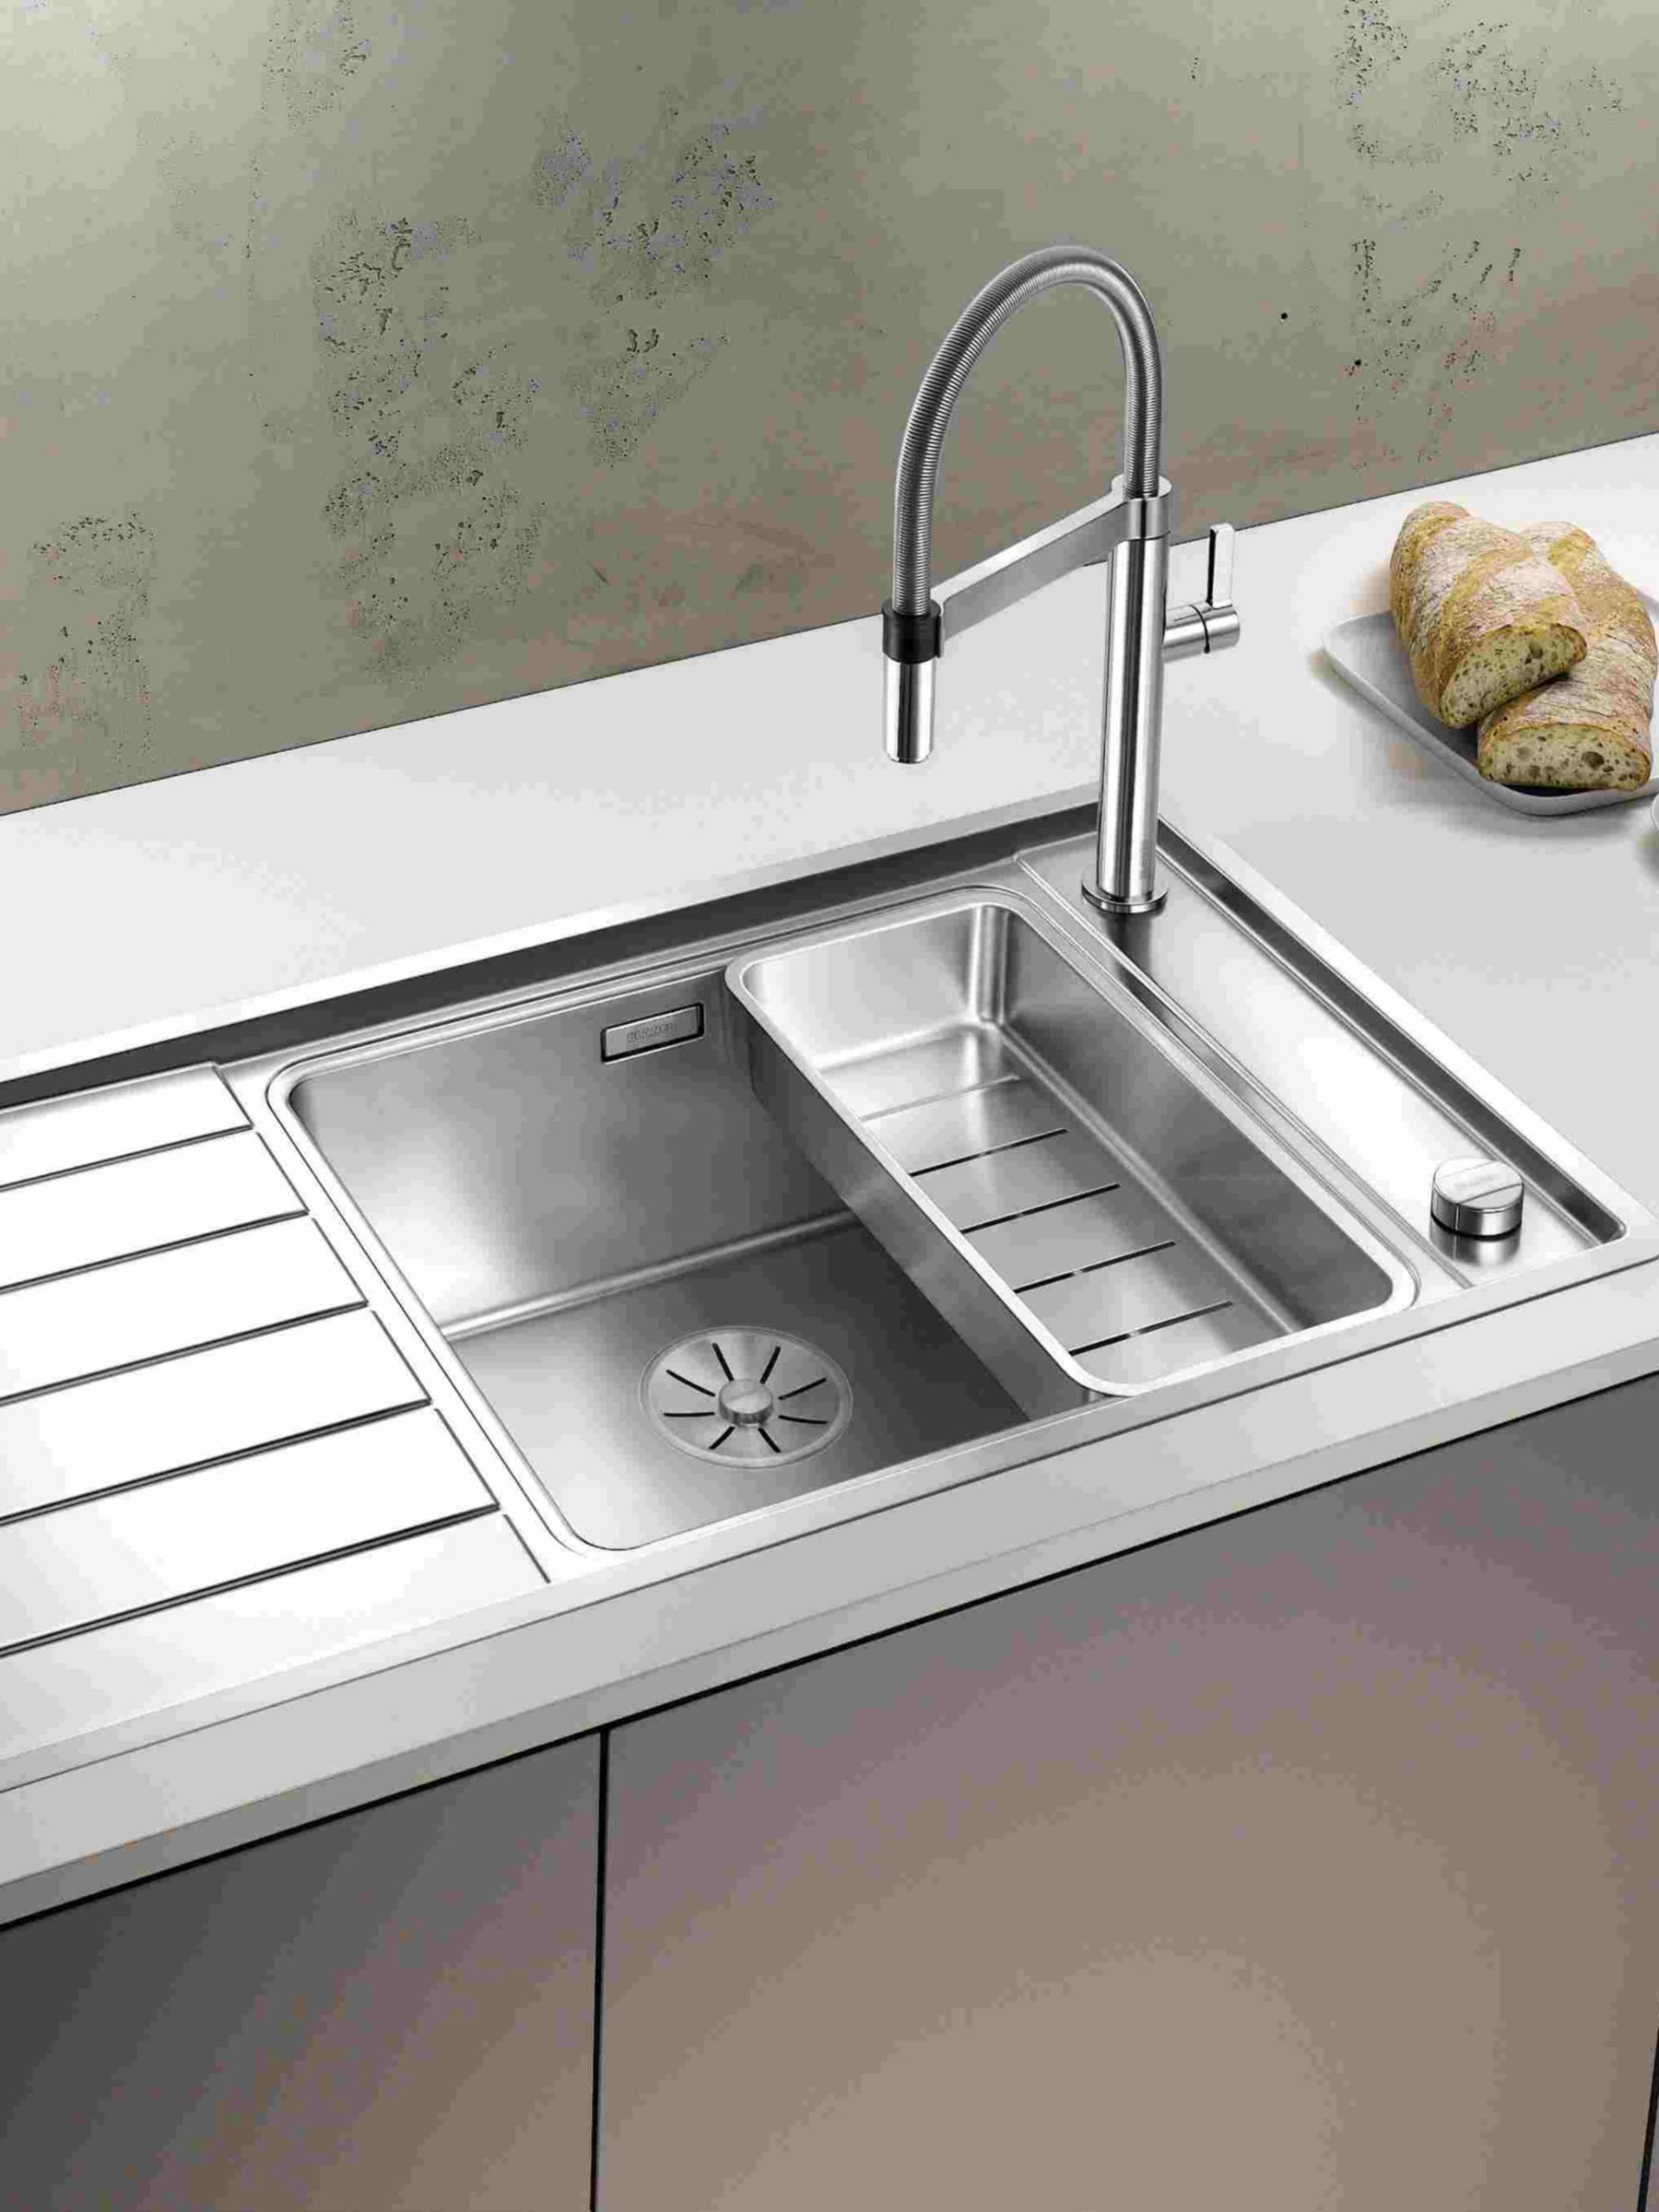 Blanco Andano Xl 6 S If Inset 1 5 Kitchen Sink With Right Hand Bowl Sink Inset Sink Kitchen Interior